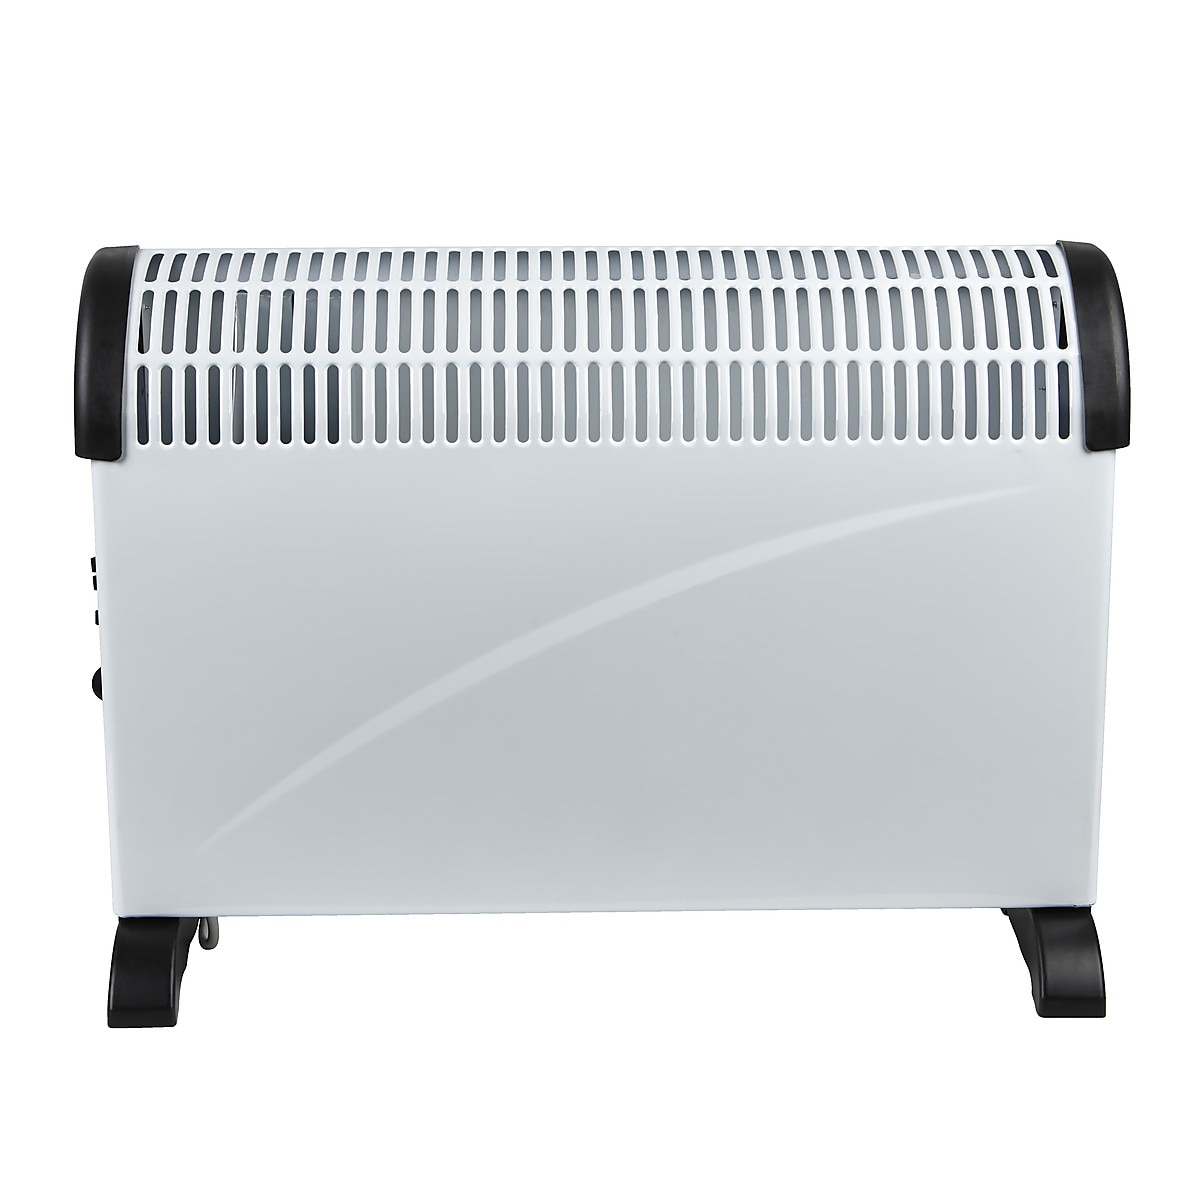 Convector Heater with Fan